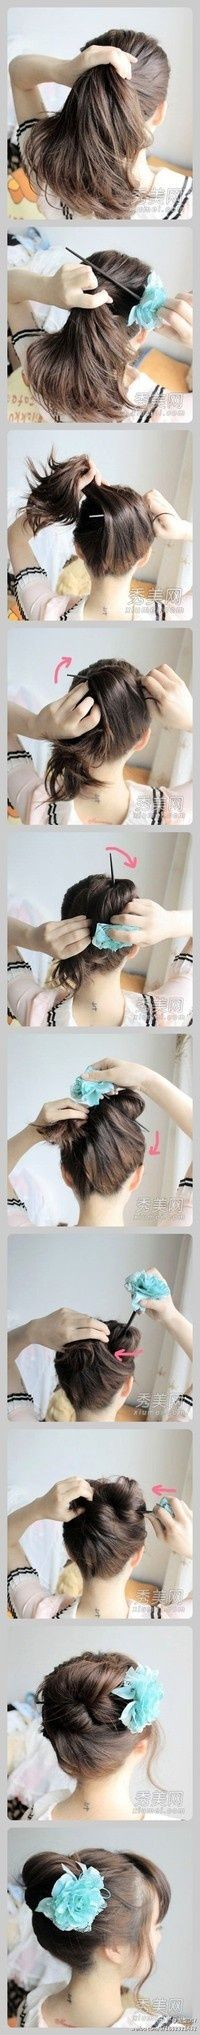 easy hair updo - must try this sometime!